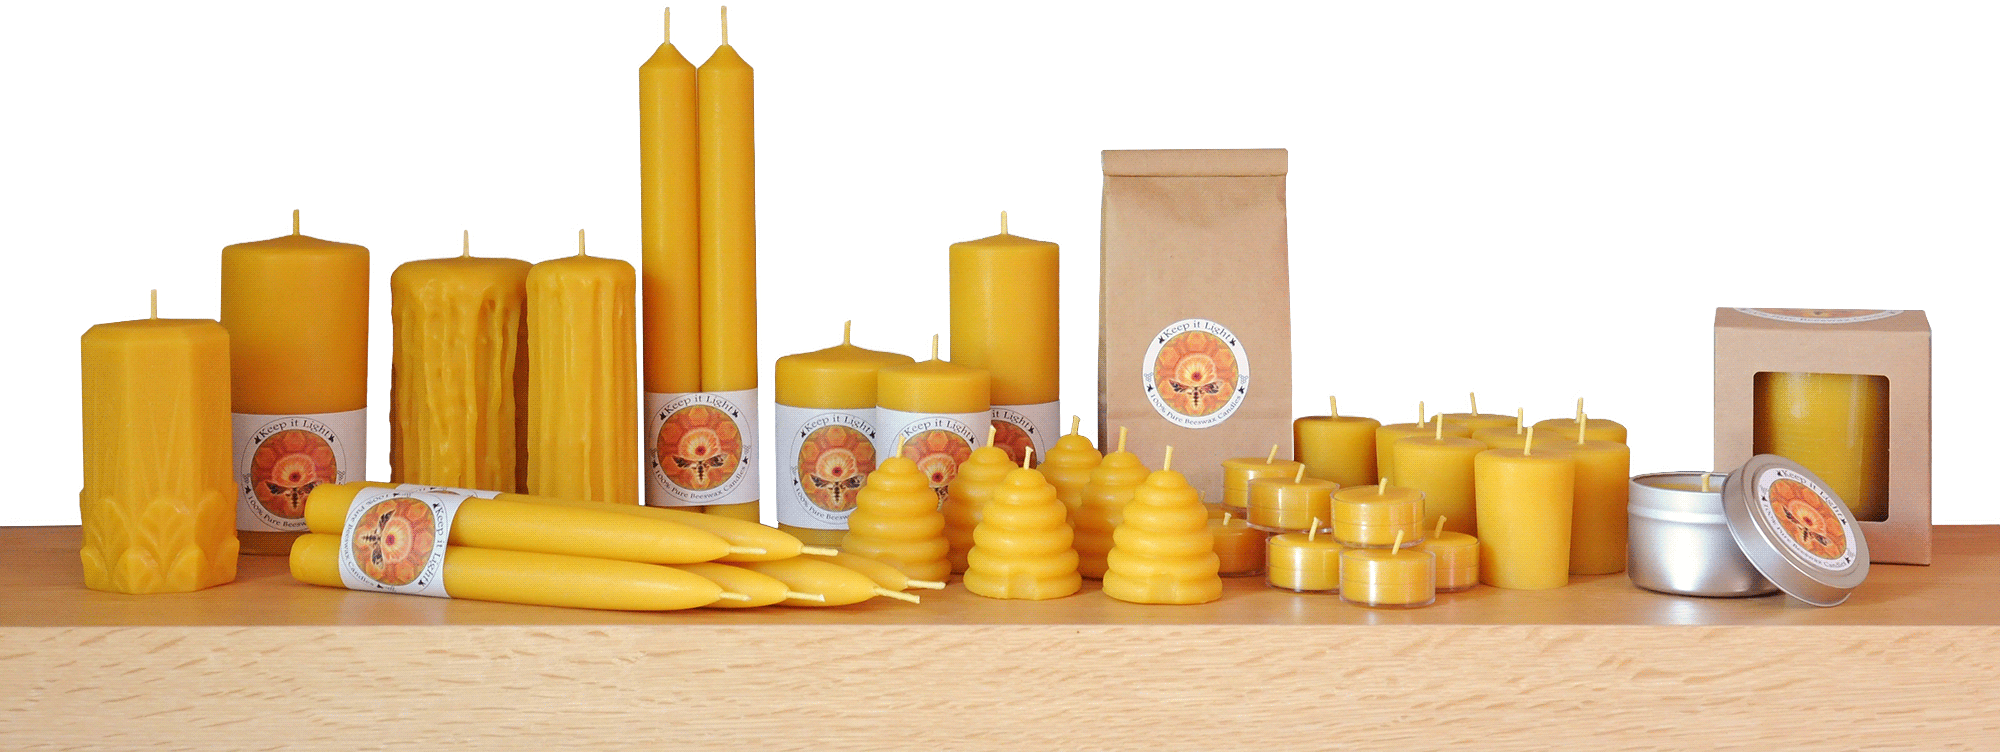 100% pure beeswax candles in assorted shapes and sizes by Keep It Light